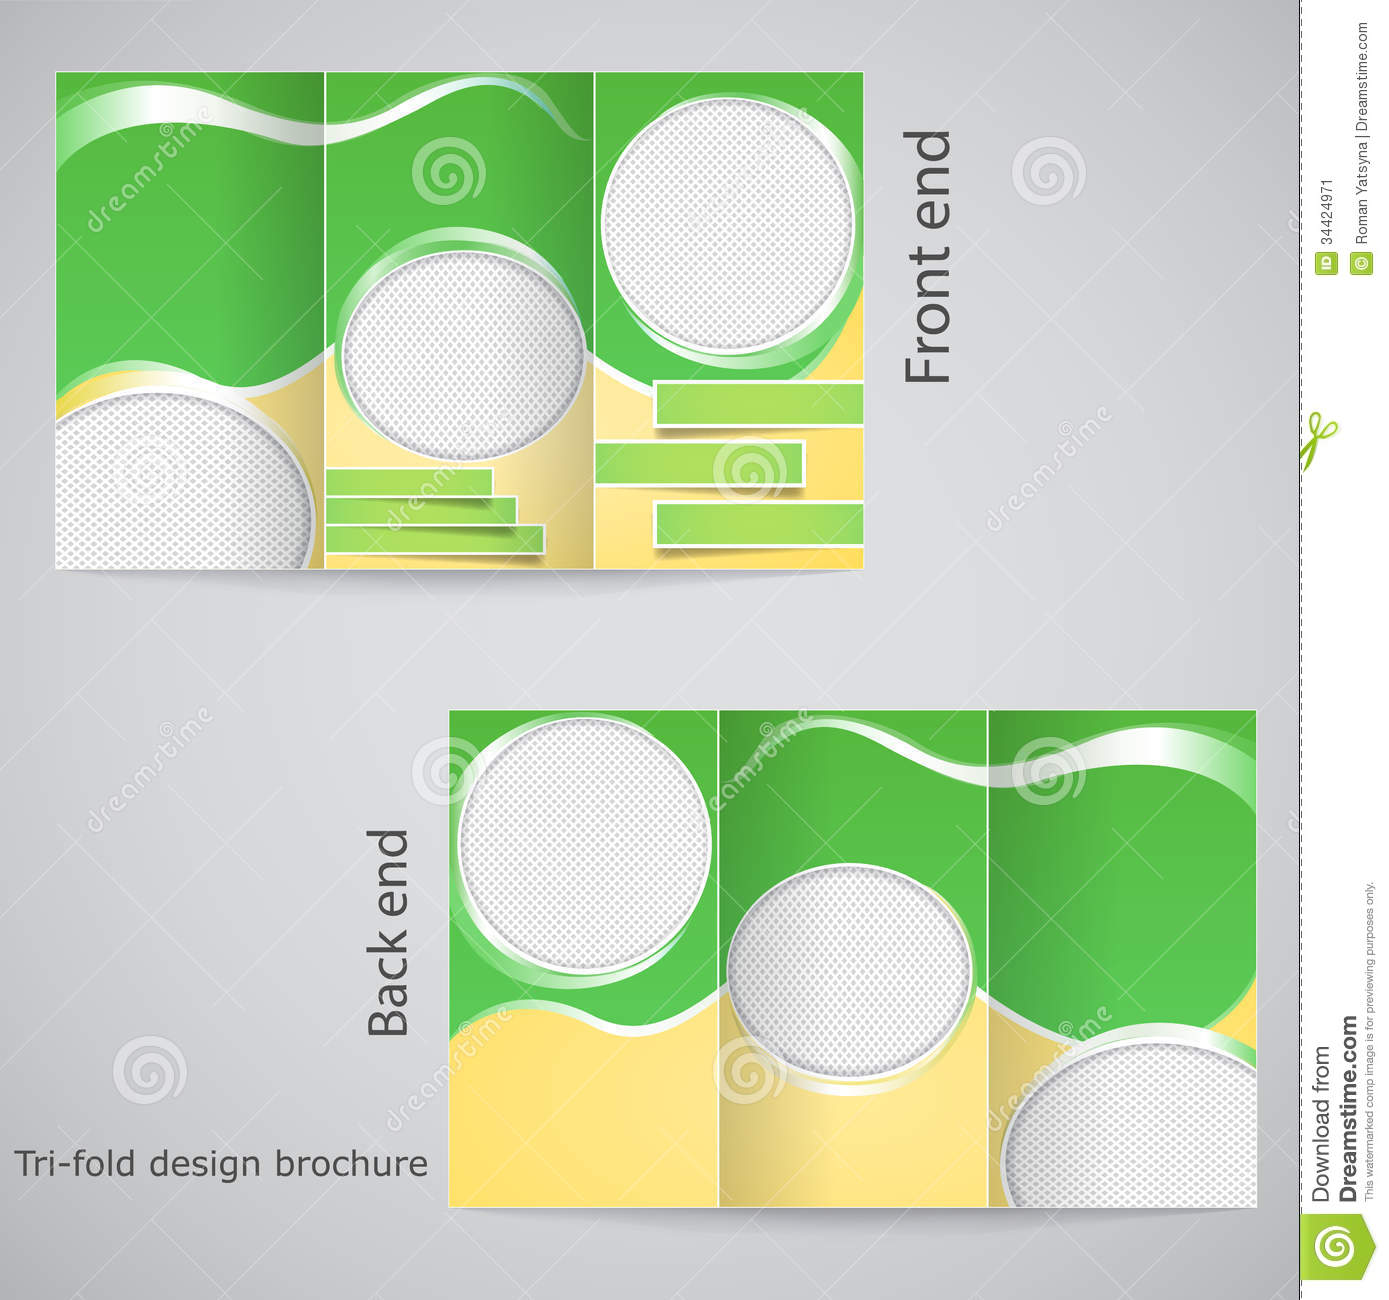 design a brochure free templates - tri fold brochure design stock vector illustration of